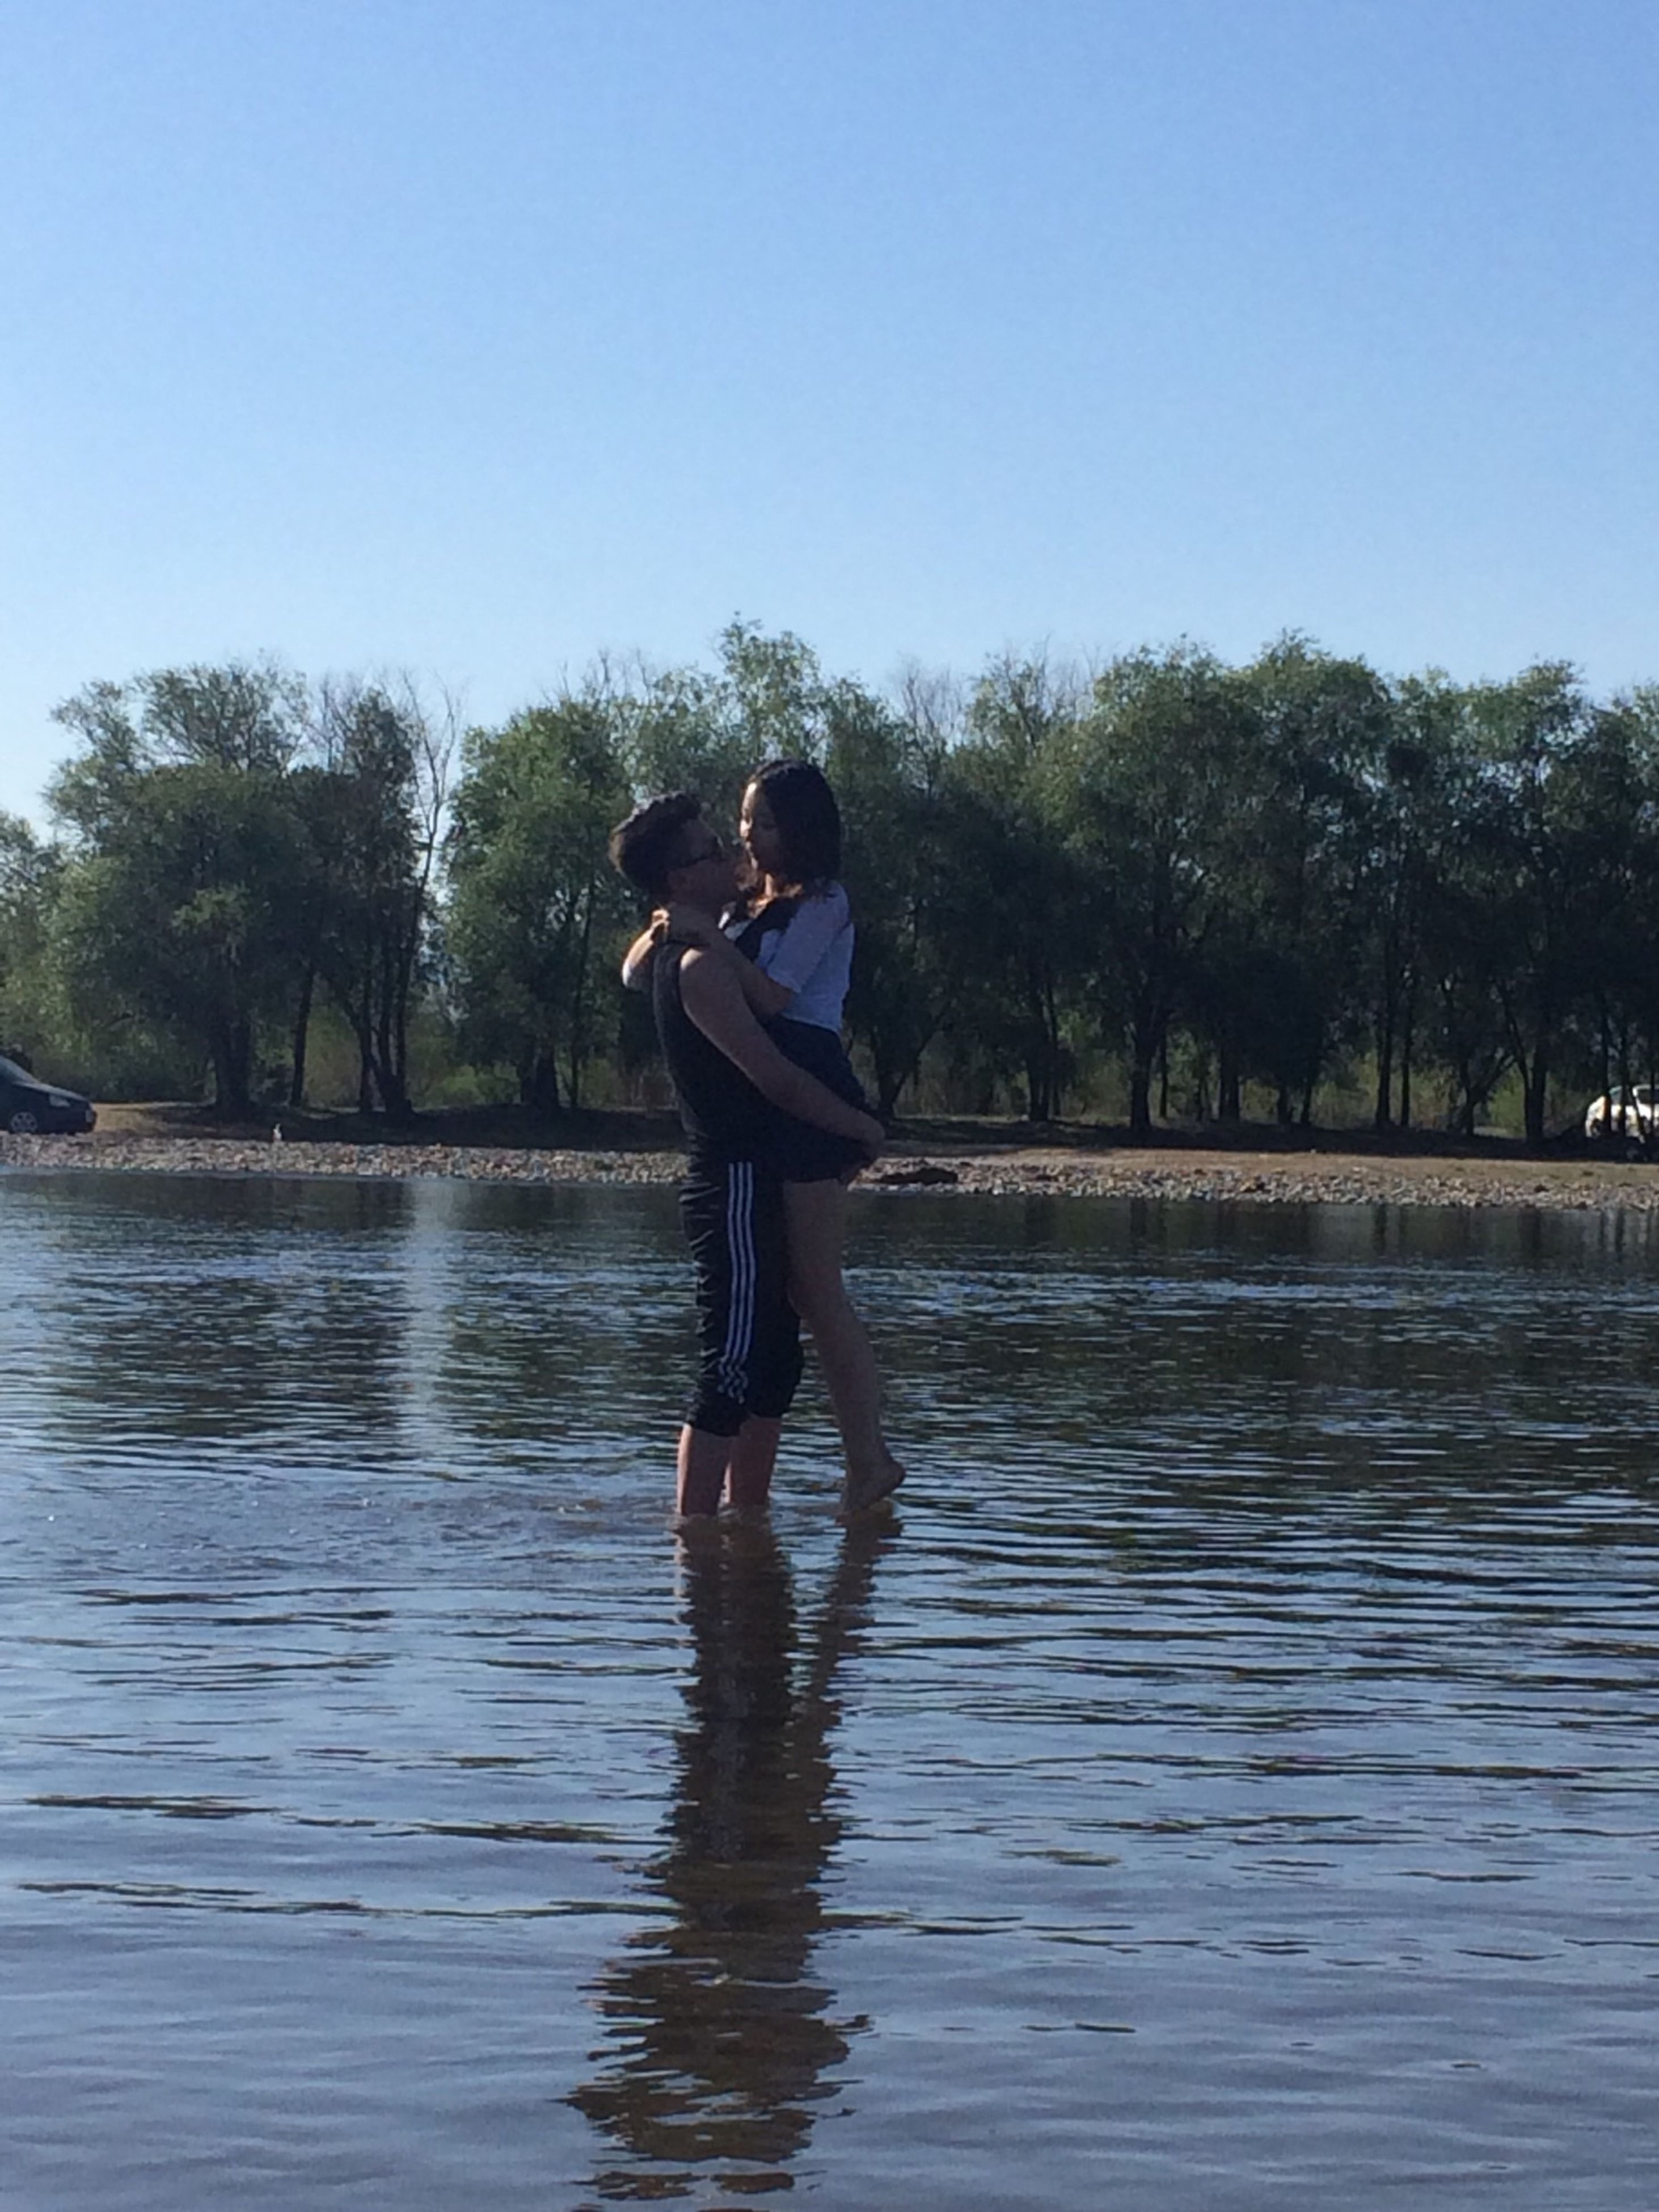 water, lifestyles, leisure activity, tree, full length, clear sky, young adult, waterfront, casual clothing, enjoyment, standing, lake, person, young women, nature, vacations, rear view, day